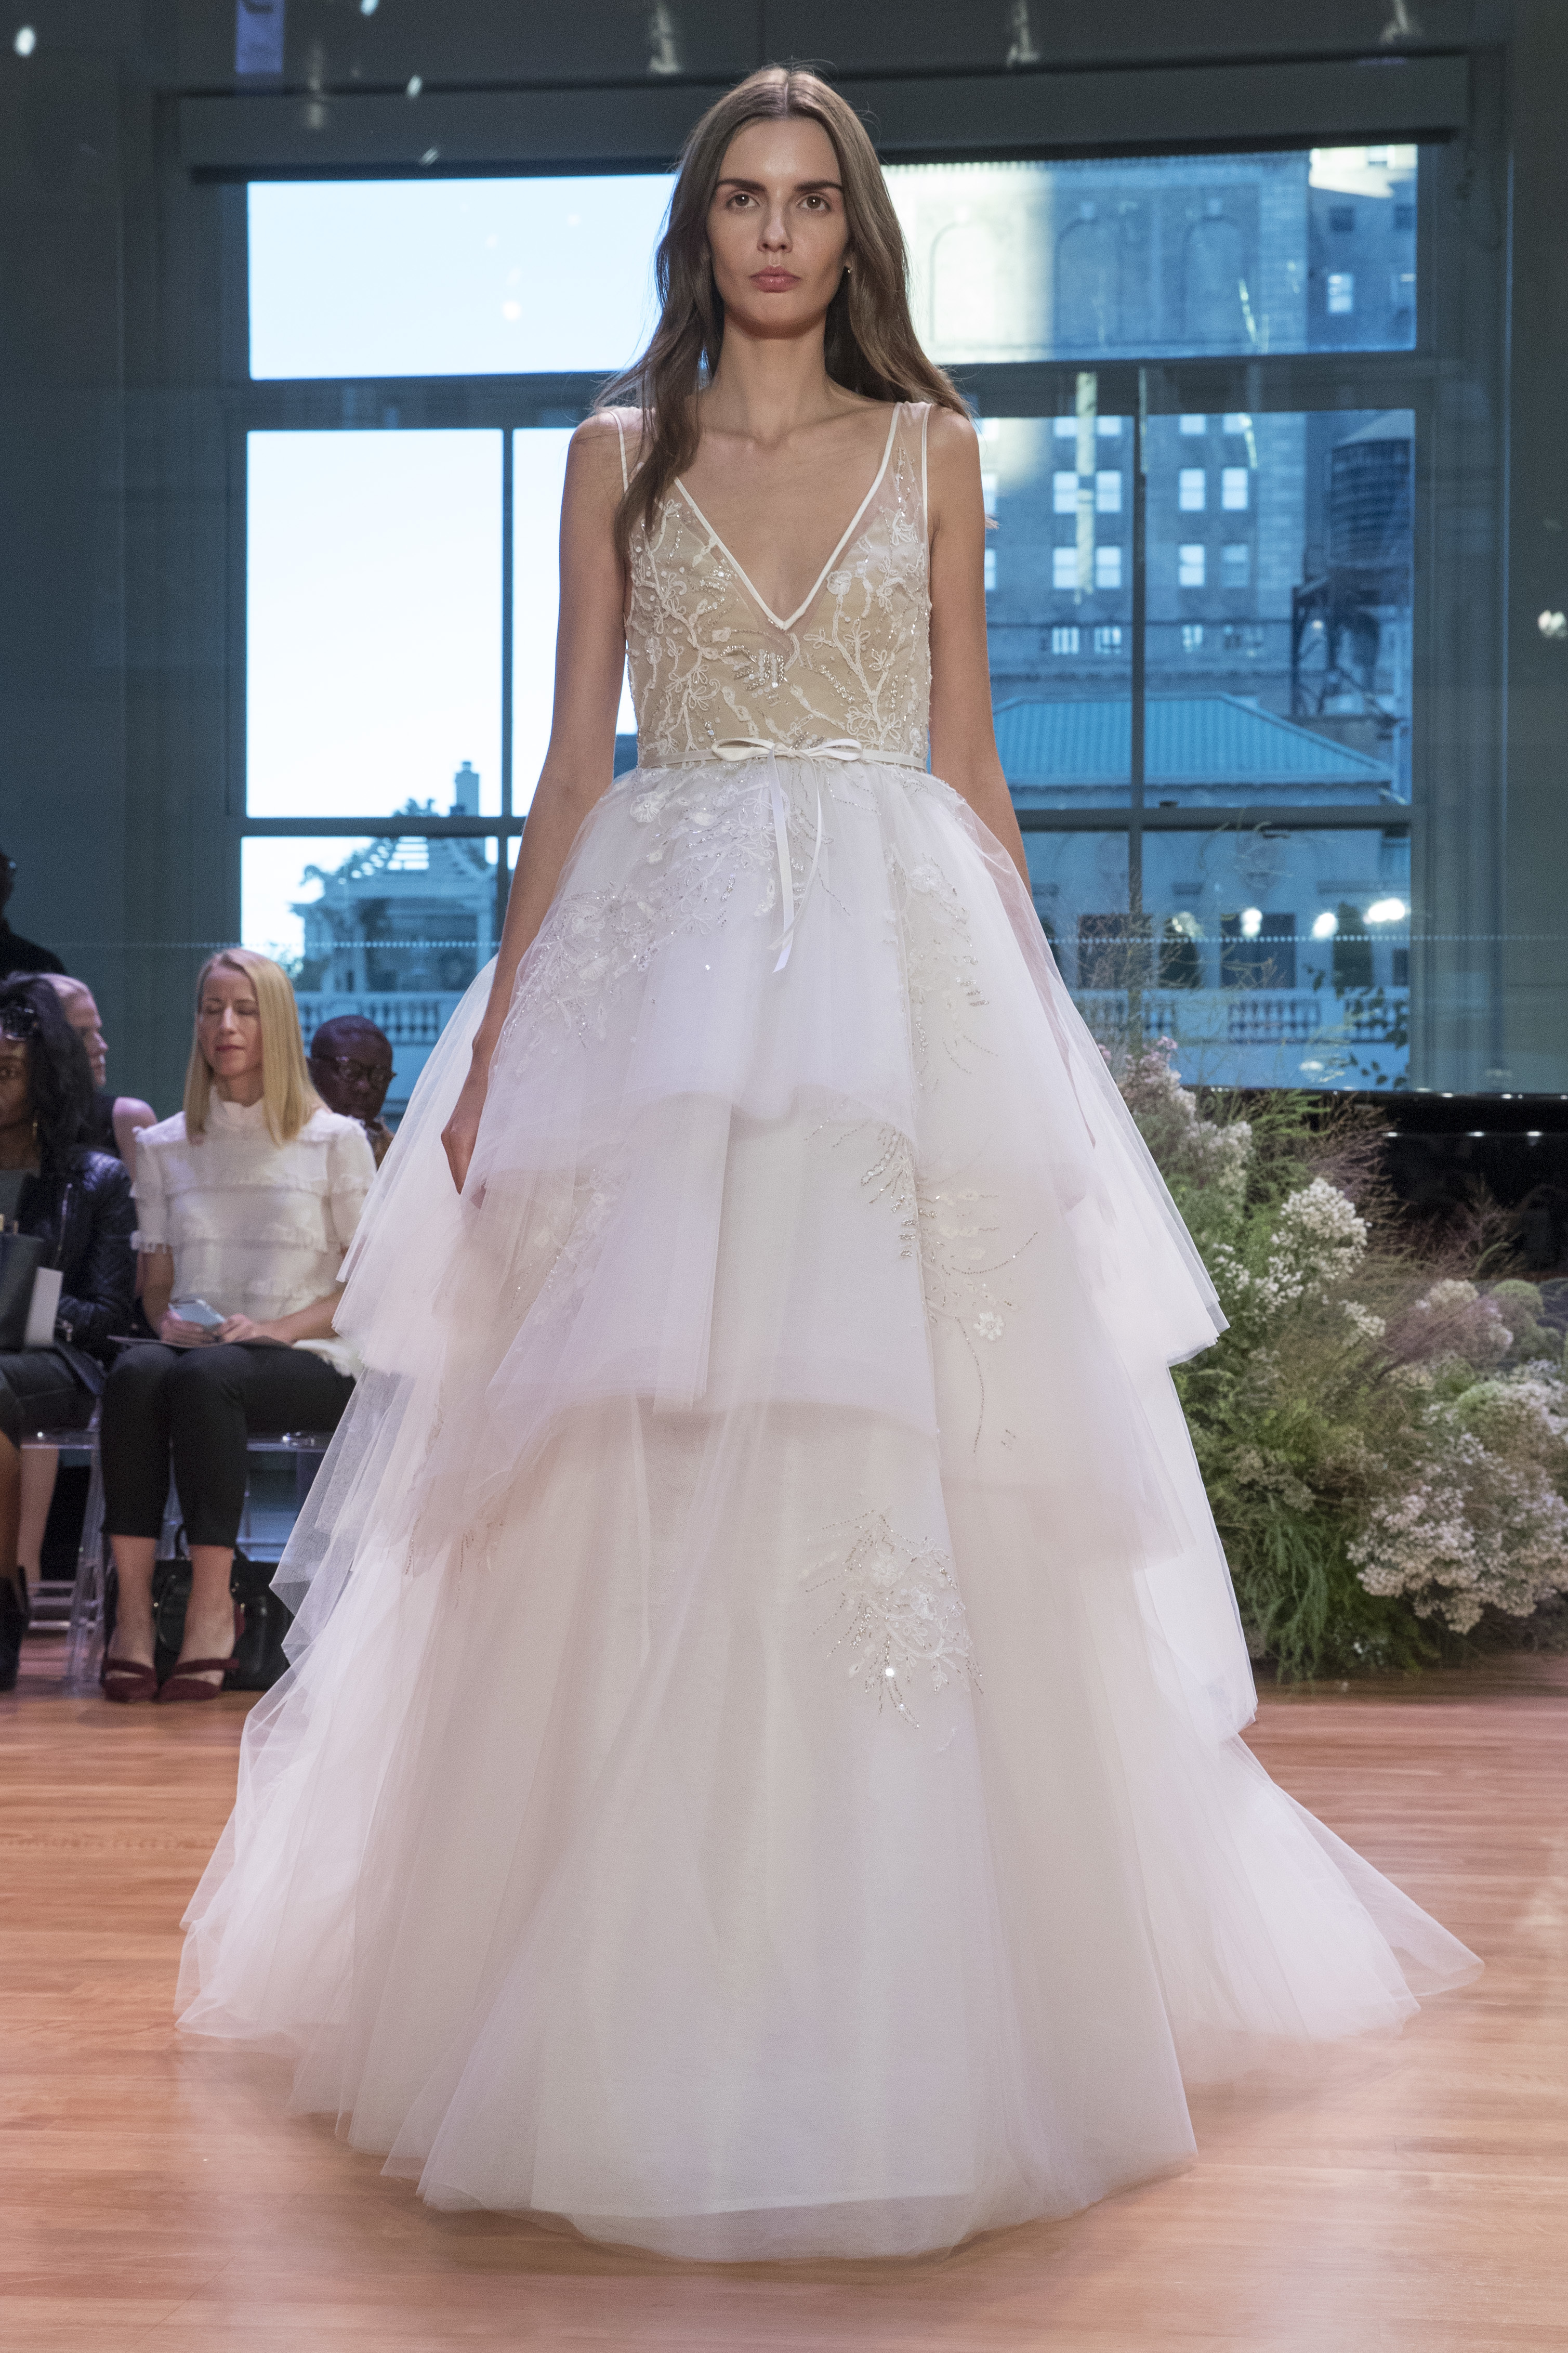 Wedding Dress From Breaking Dawn 77 Good In this Friday Oct